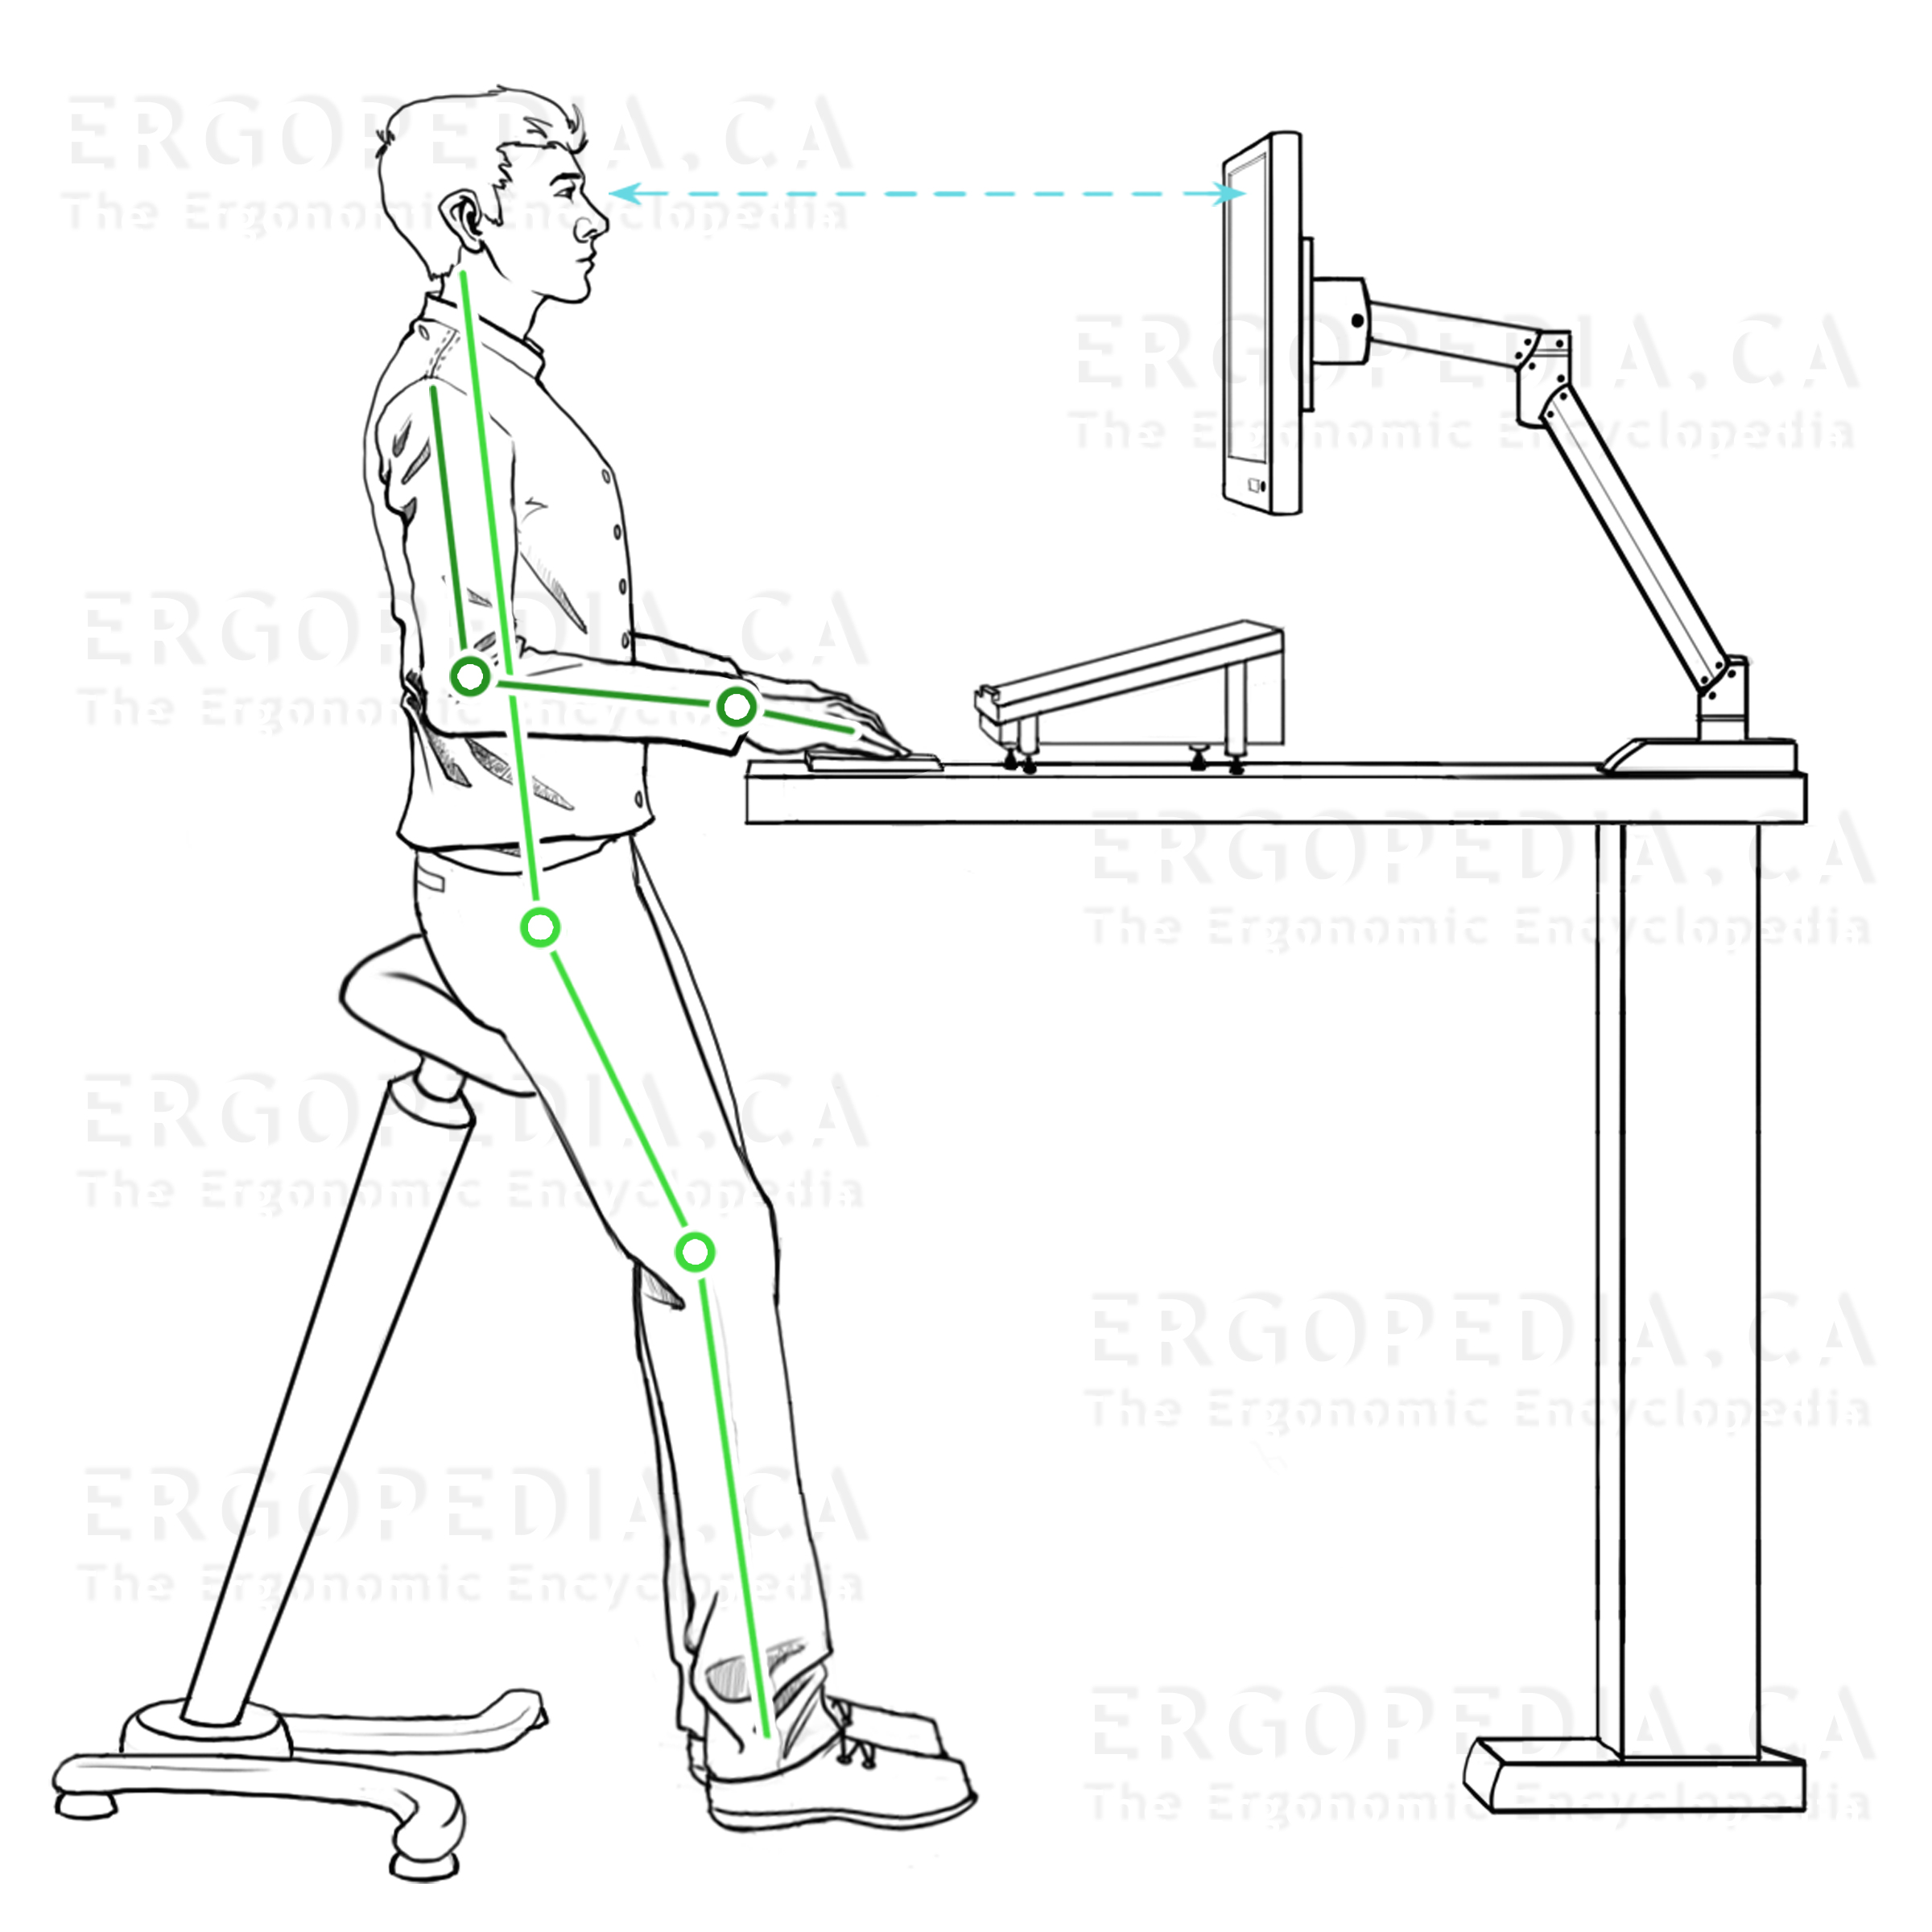 Graphic of Ergonomic Workstation Guidelines When Leaning           at a Workstation